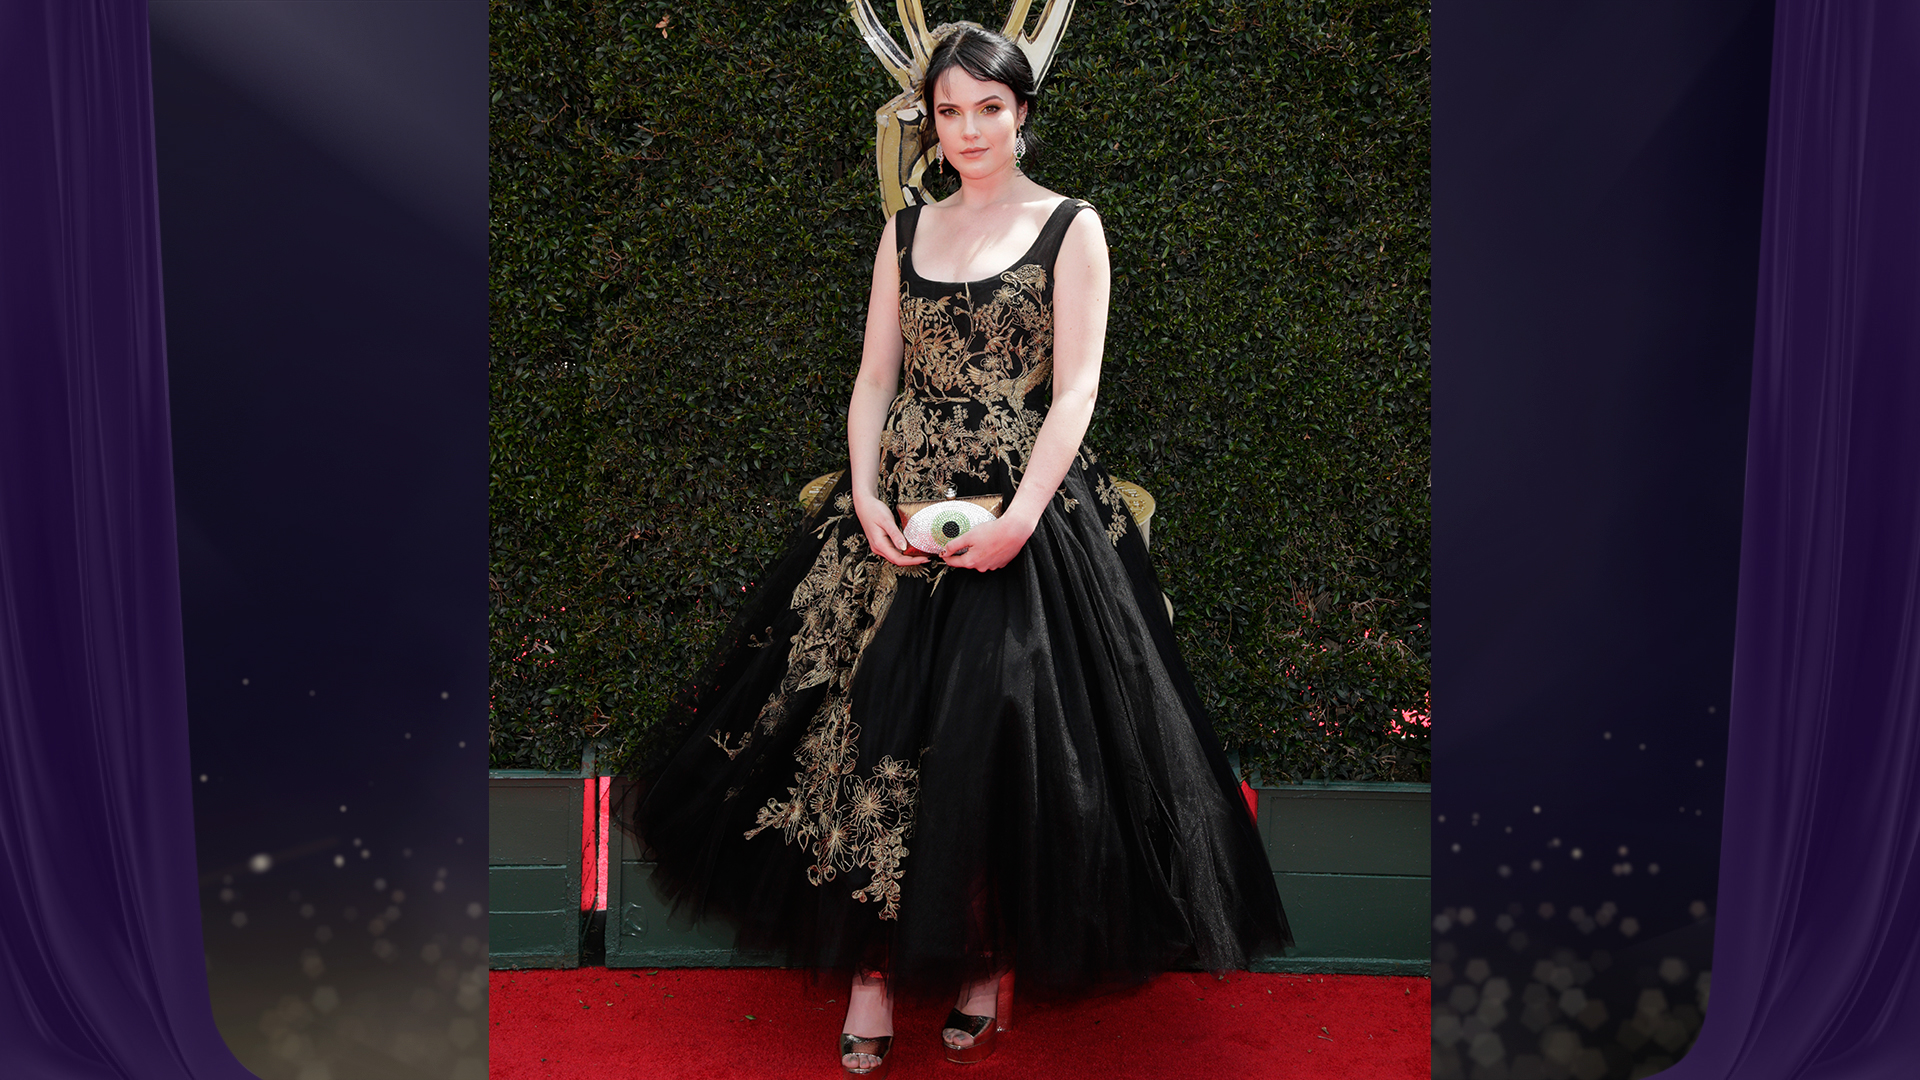 Y&R star Cait Fairbanks, who's nominated for Outstanding Younger Actress in a Drama Series, wears a black princess gown with gold floral appliqué.